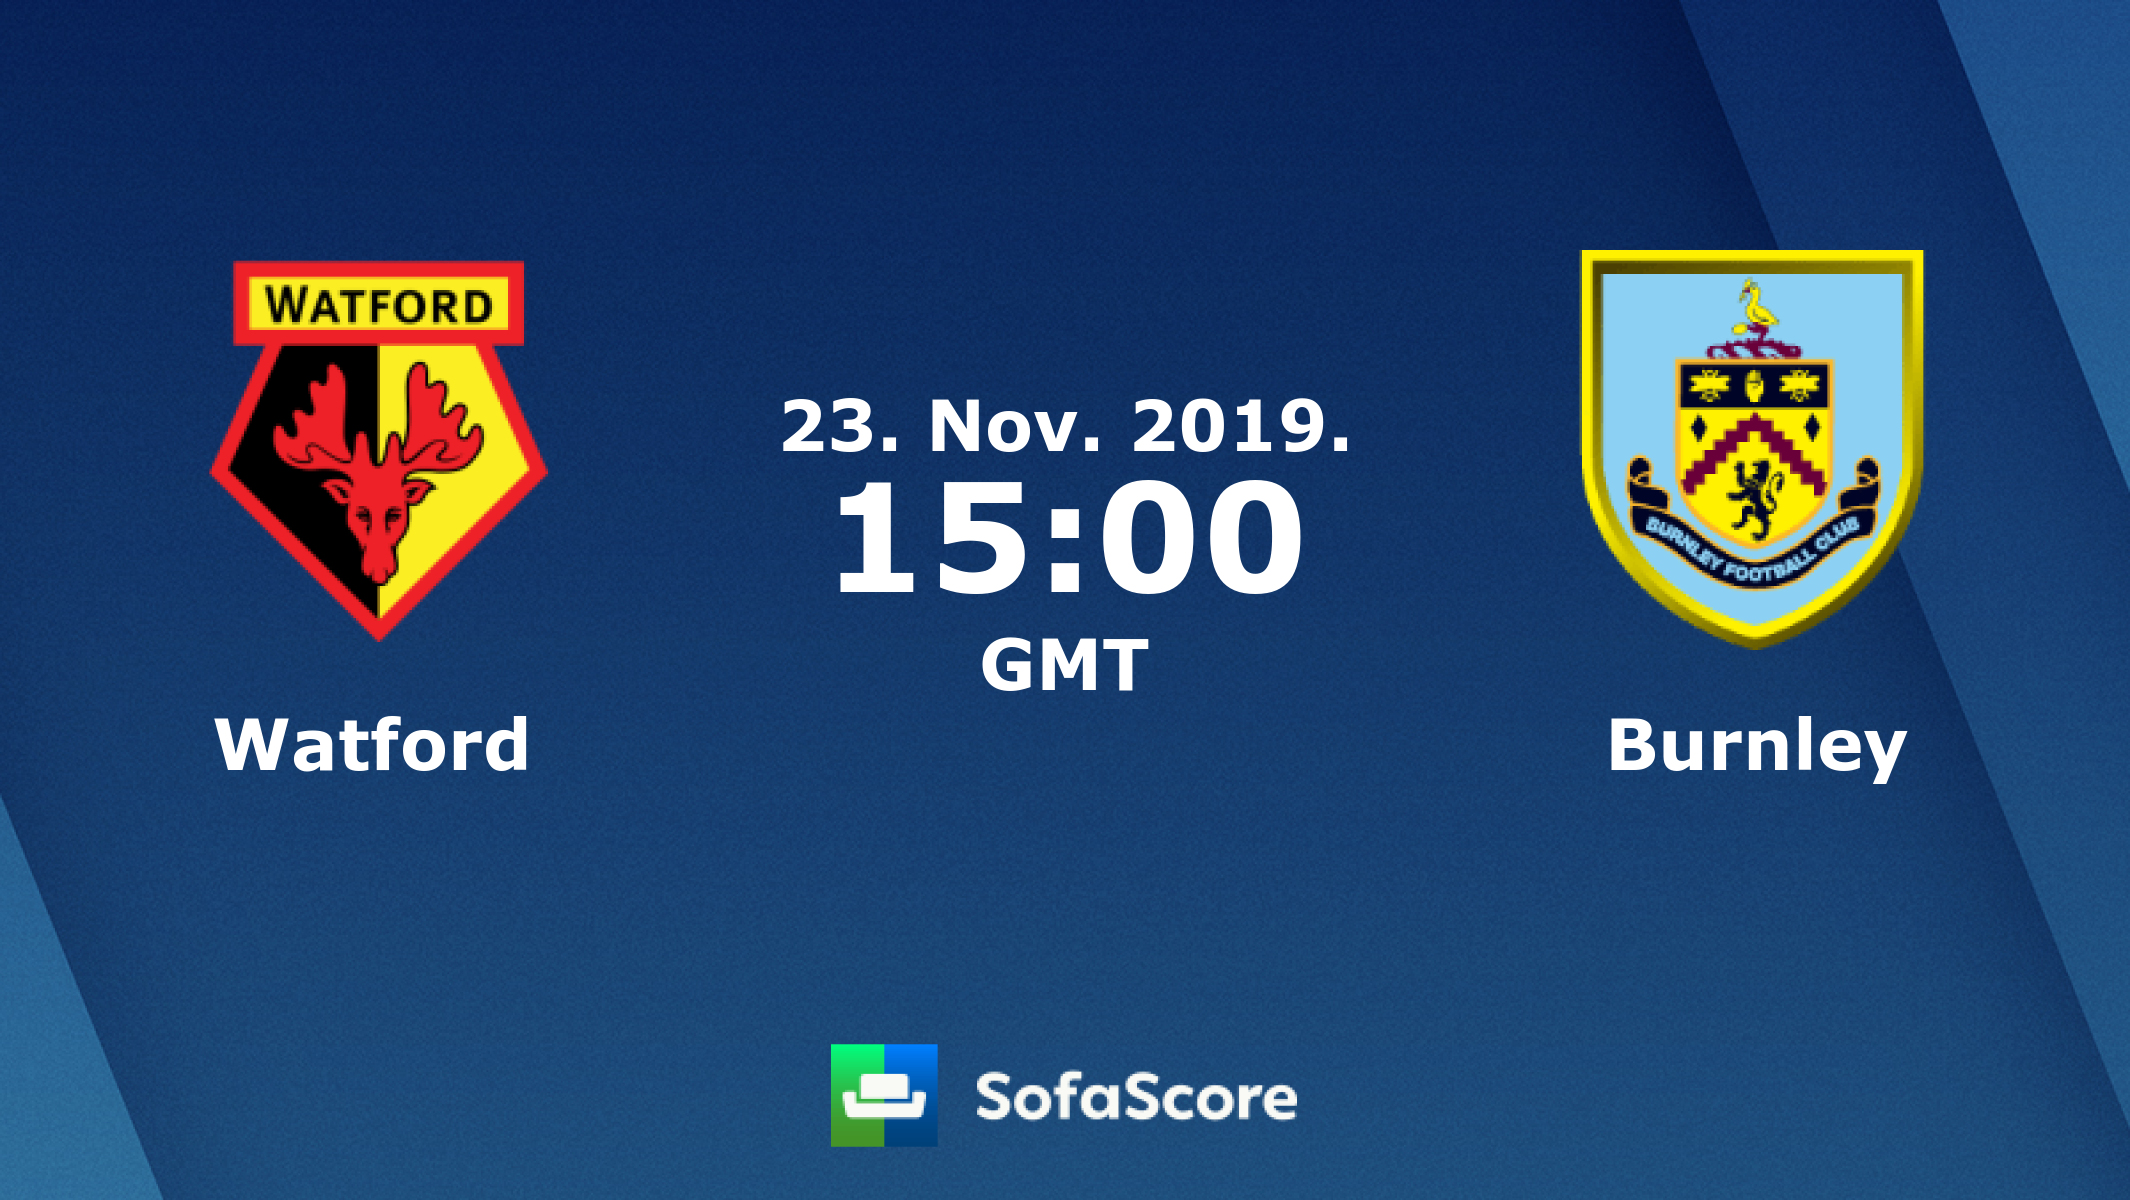 Watford Burnley live score, video stream and H2H results